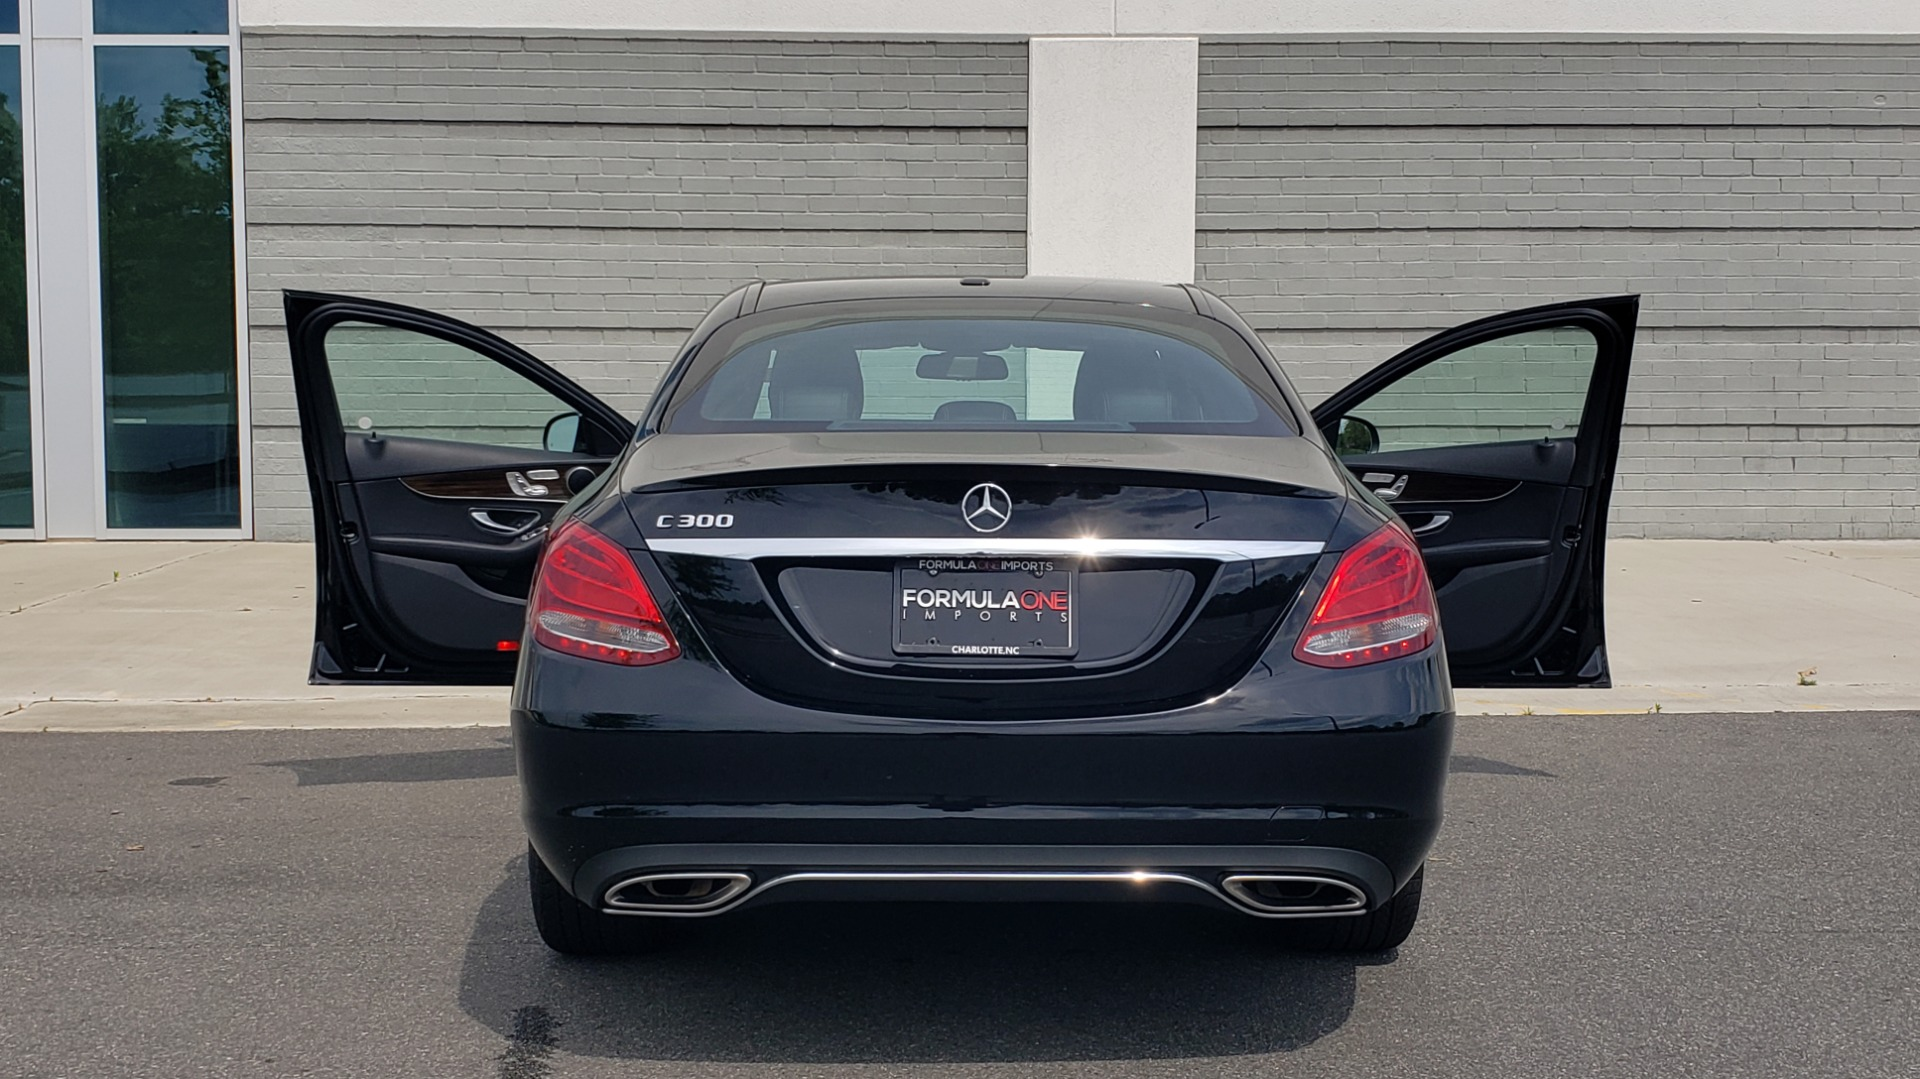 Used 2018 Mercedes-Benz C-CLASS C 300 PREMIUM / HTD STS / APPLE CARPLAY / 18IN WHEELS / REARVIEW for sale $24,795 at Formula Imports in Charlotte NC 28227 28